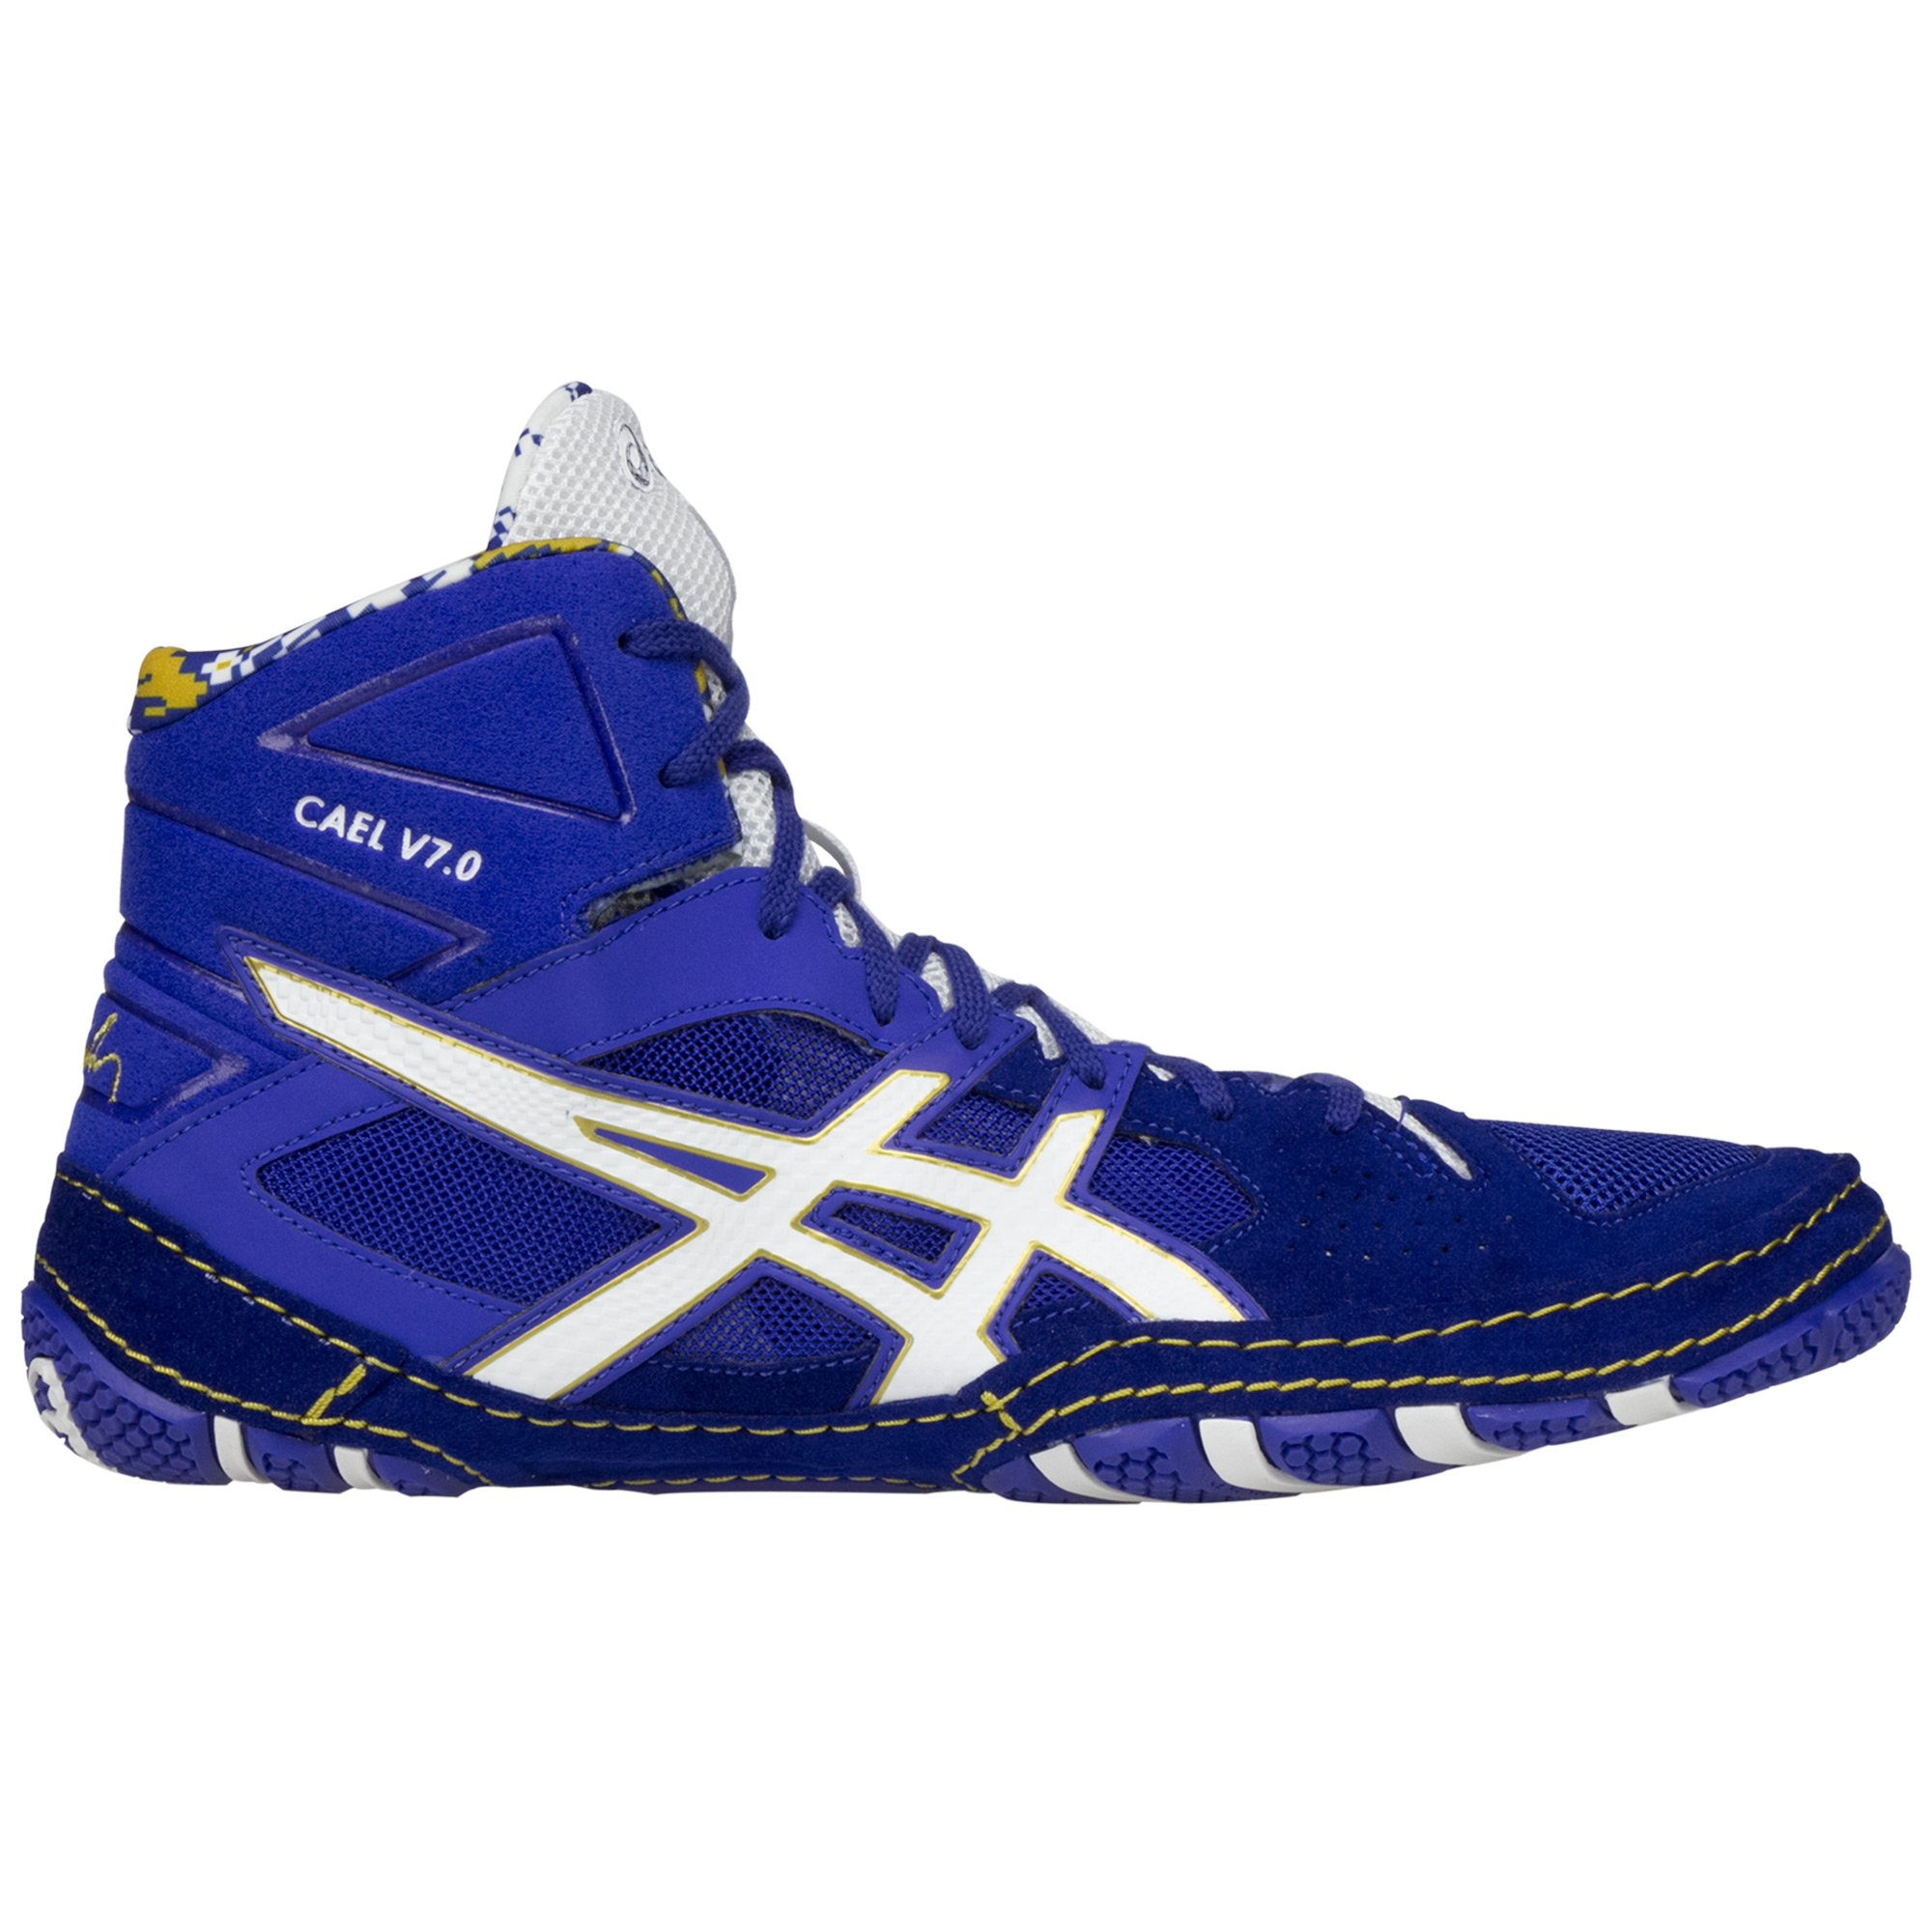 ASICS Cael V7.0 Shoes | WrestlingMart | Free Shipping